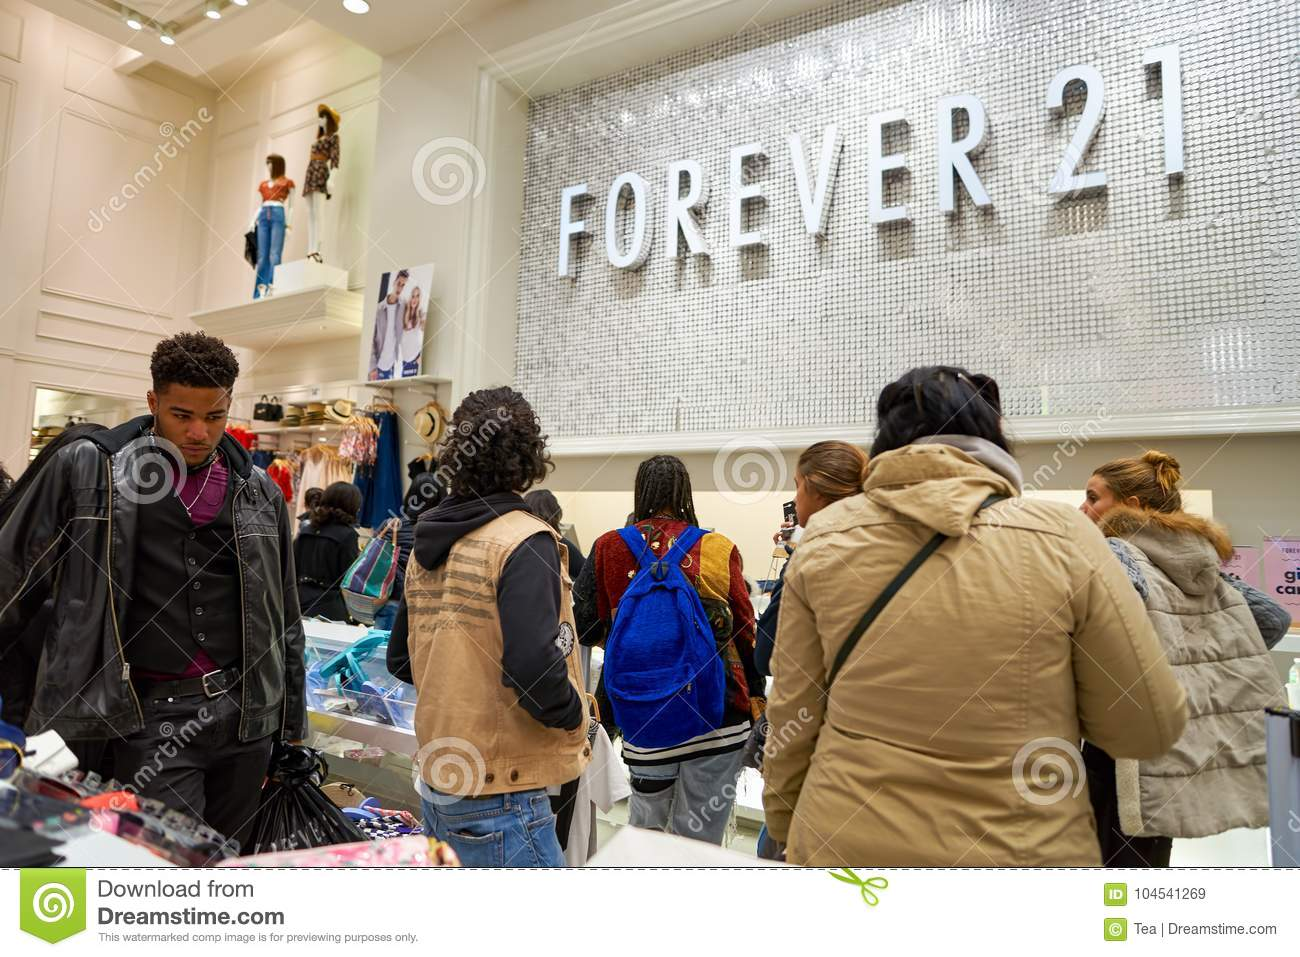 forever 21 store editorial stock image image of city 104541269